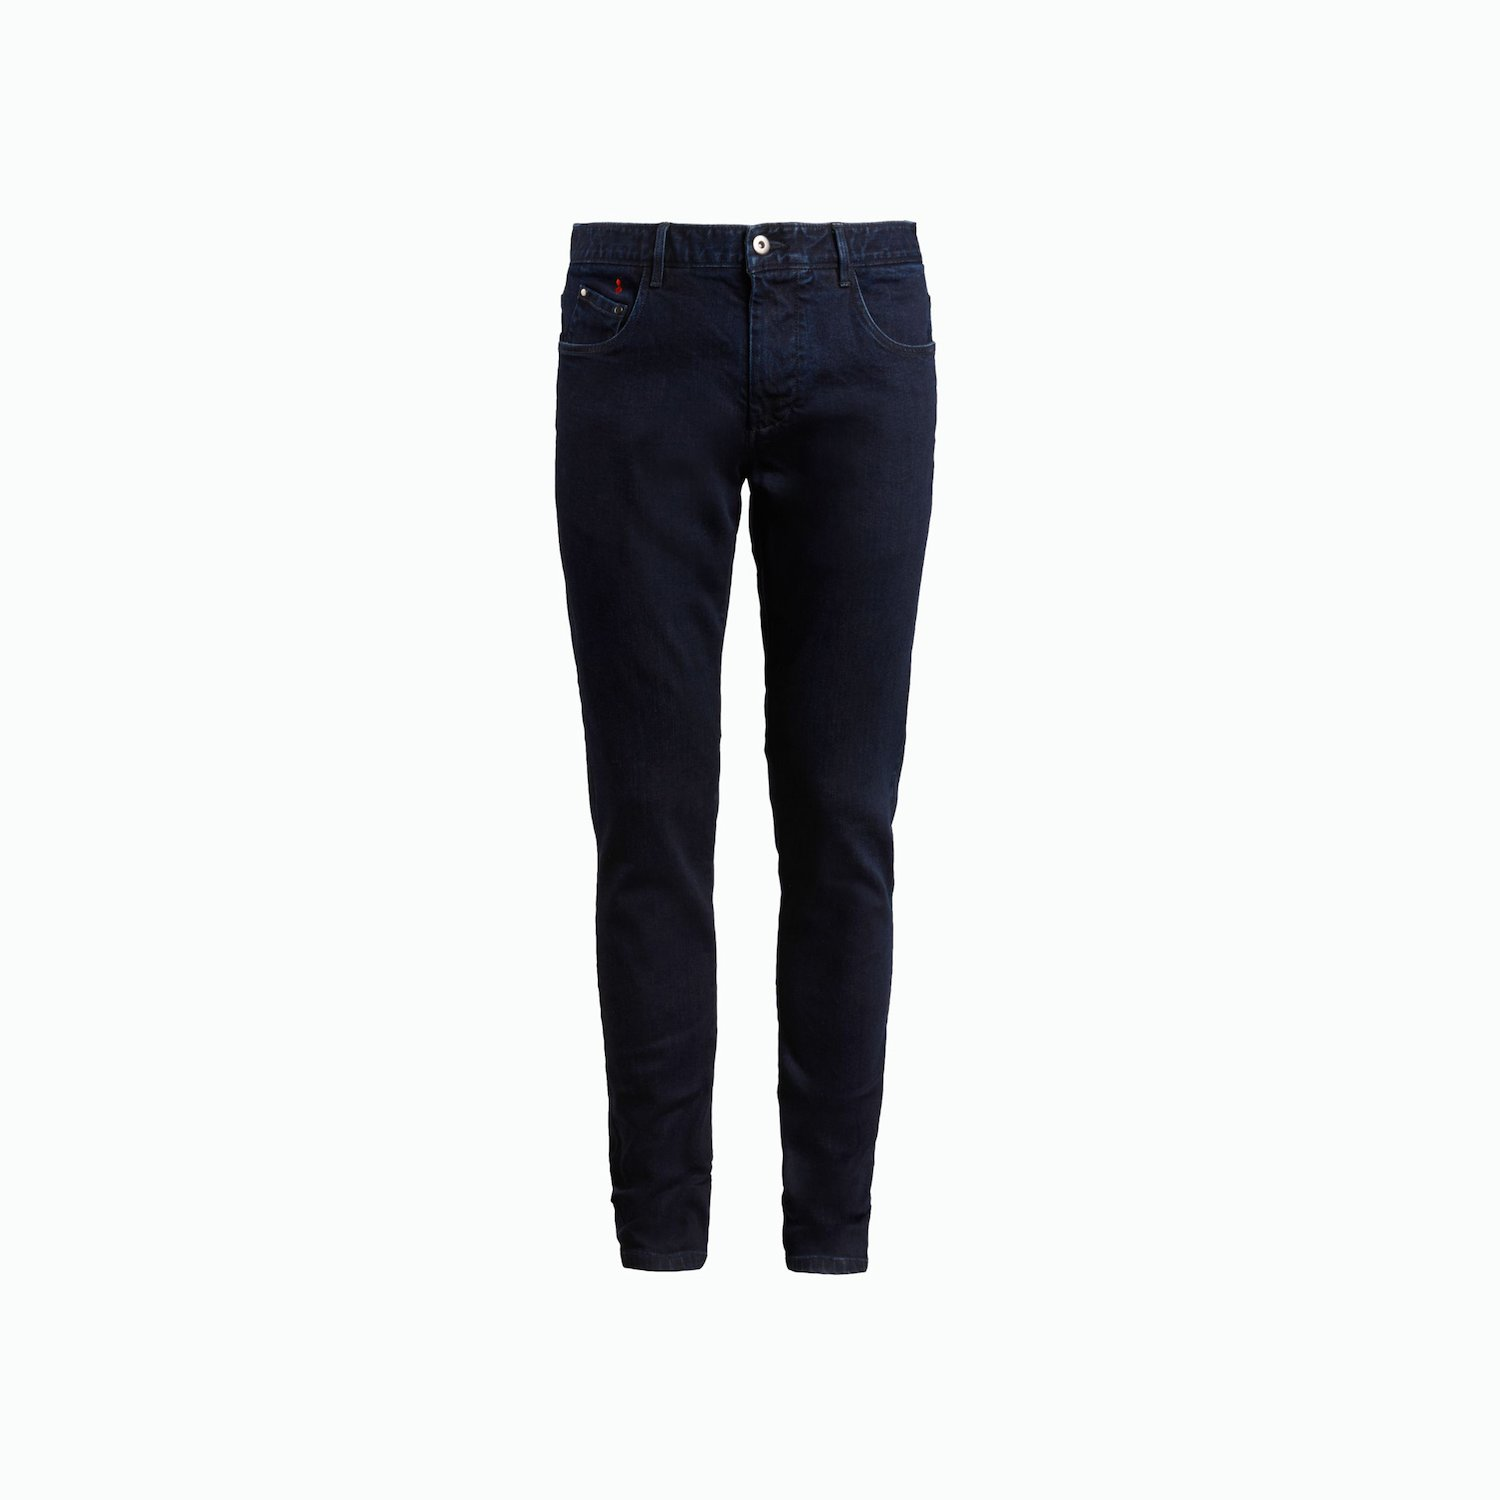 B11 pants - Dark denim